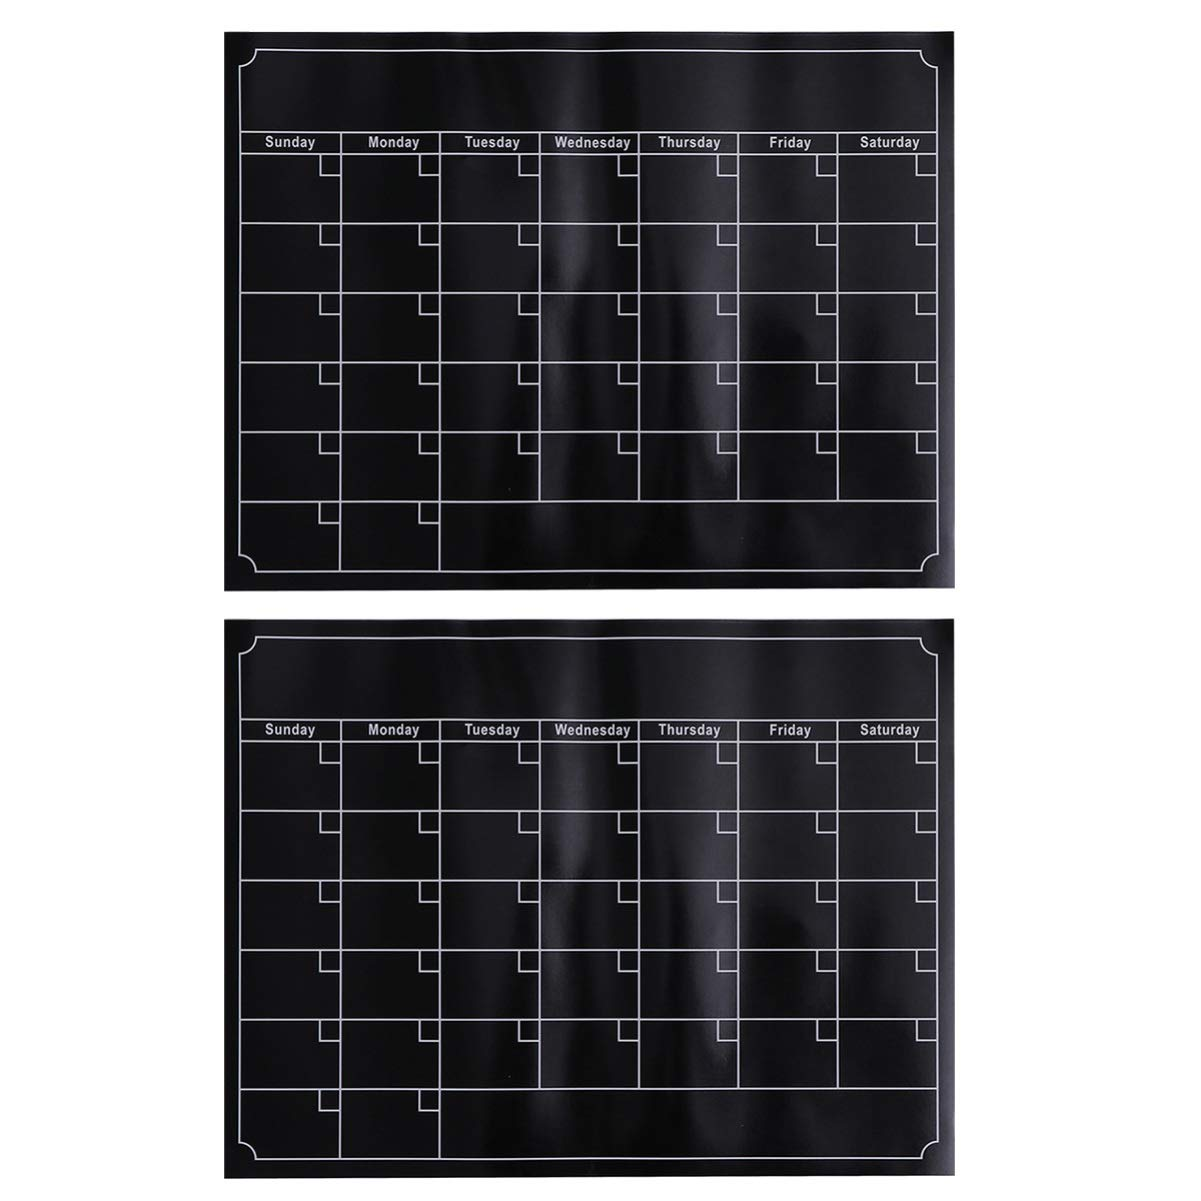 IMIKEYA 2pcs Fridge Calendar Magnetic Dry Erase Calendar Black Monthly Magnetic Calendar Whiteboard Message Board for Kitchen Refrigerator by IMIKEYA